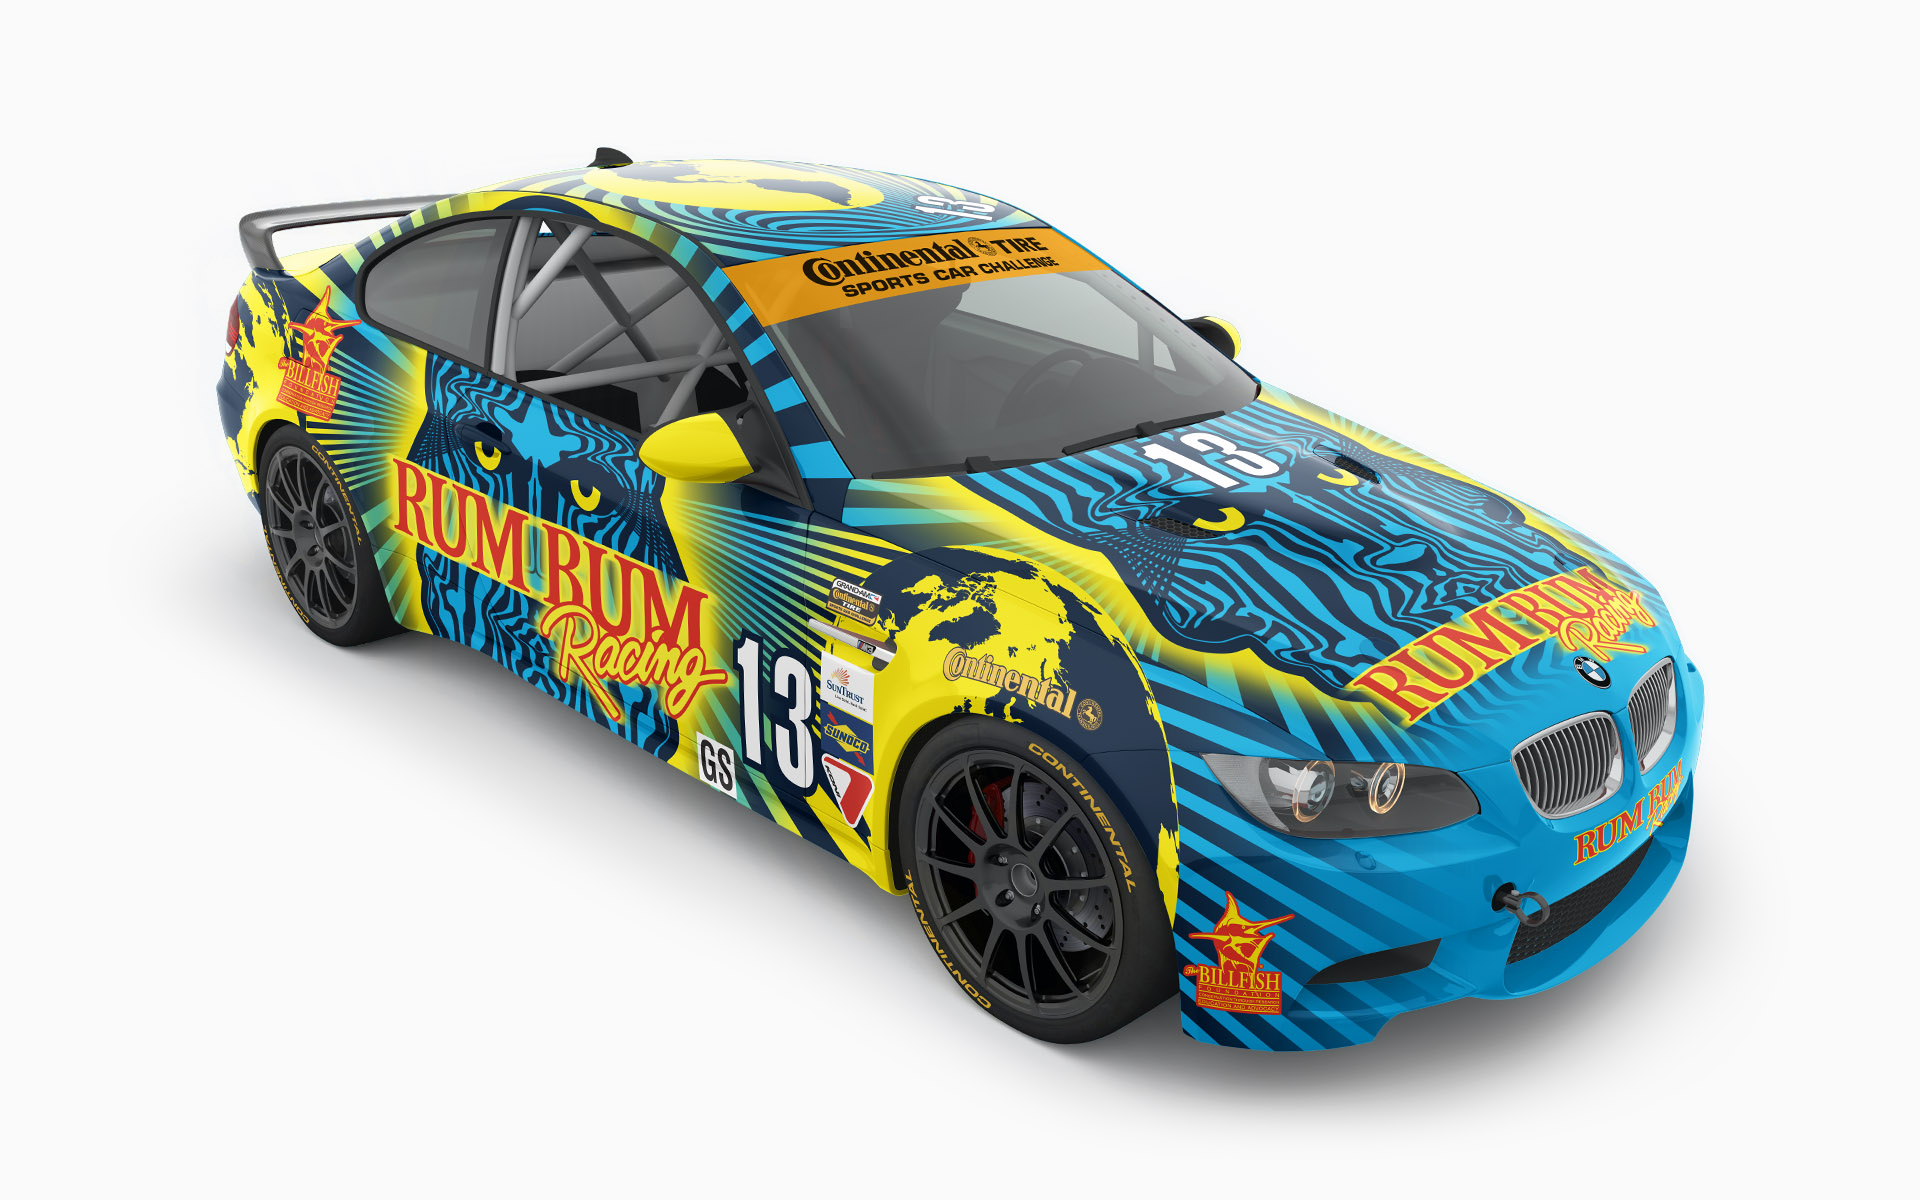 Rum Bum Racing BMW M3 Challenge Livery Elevations